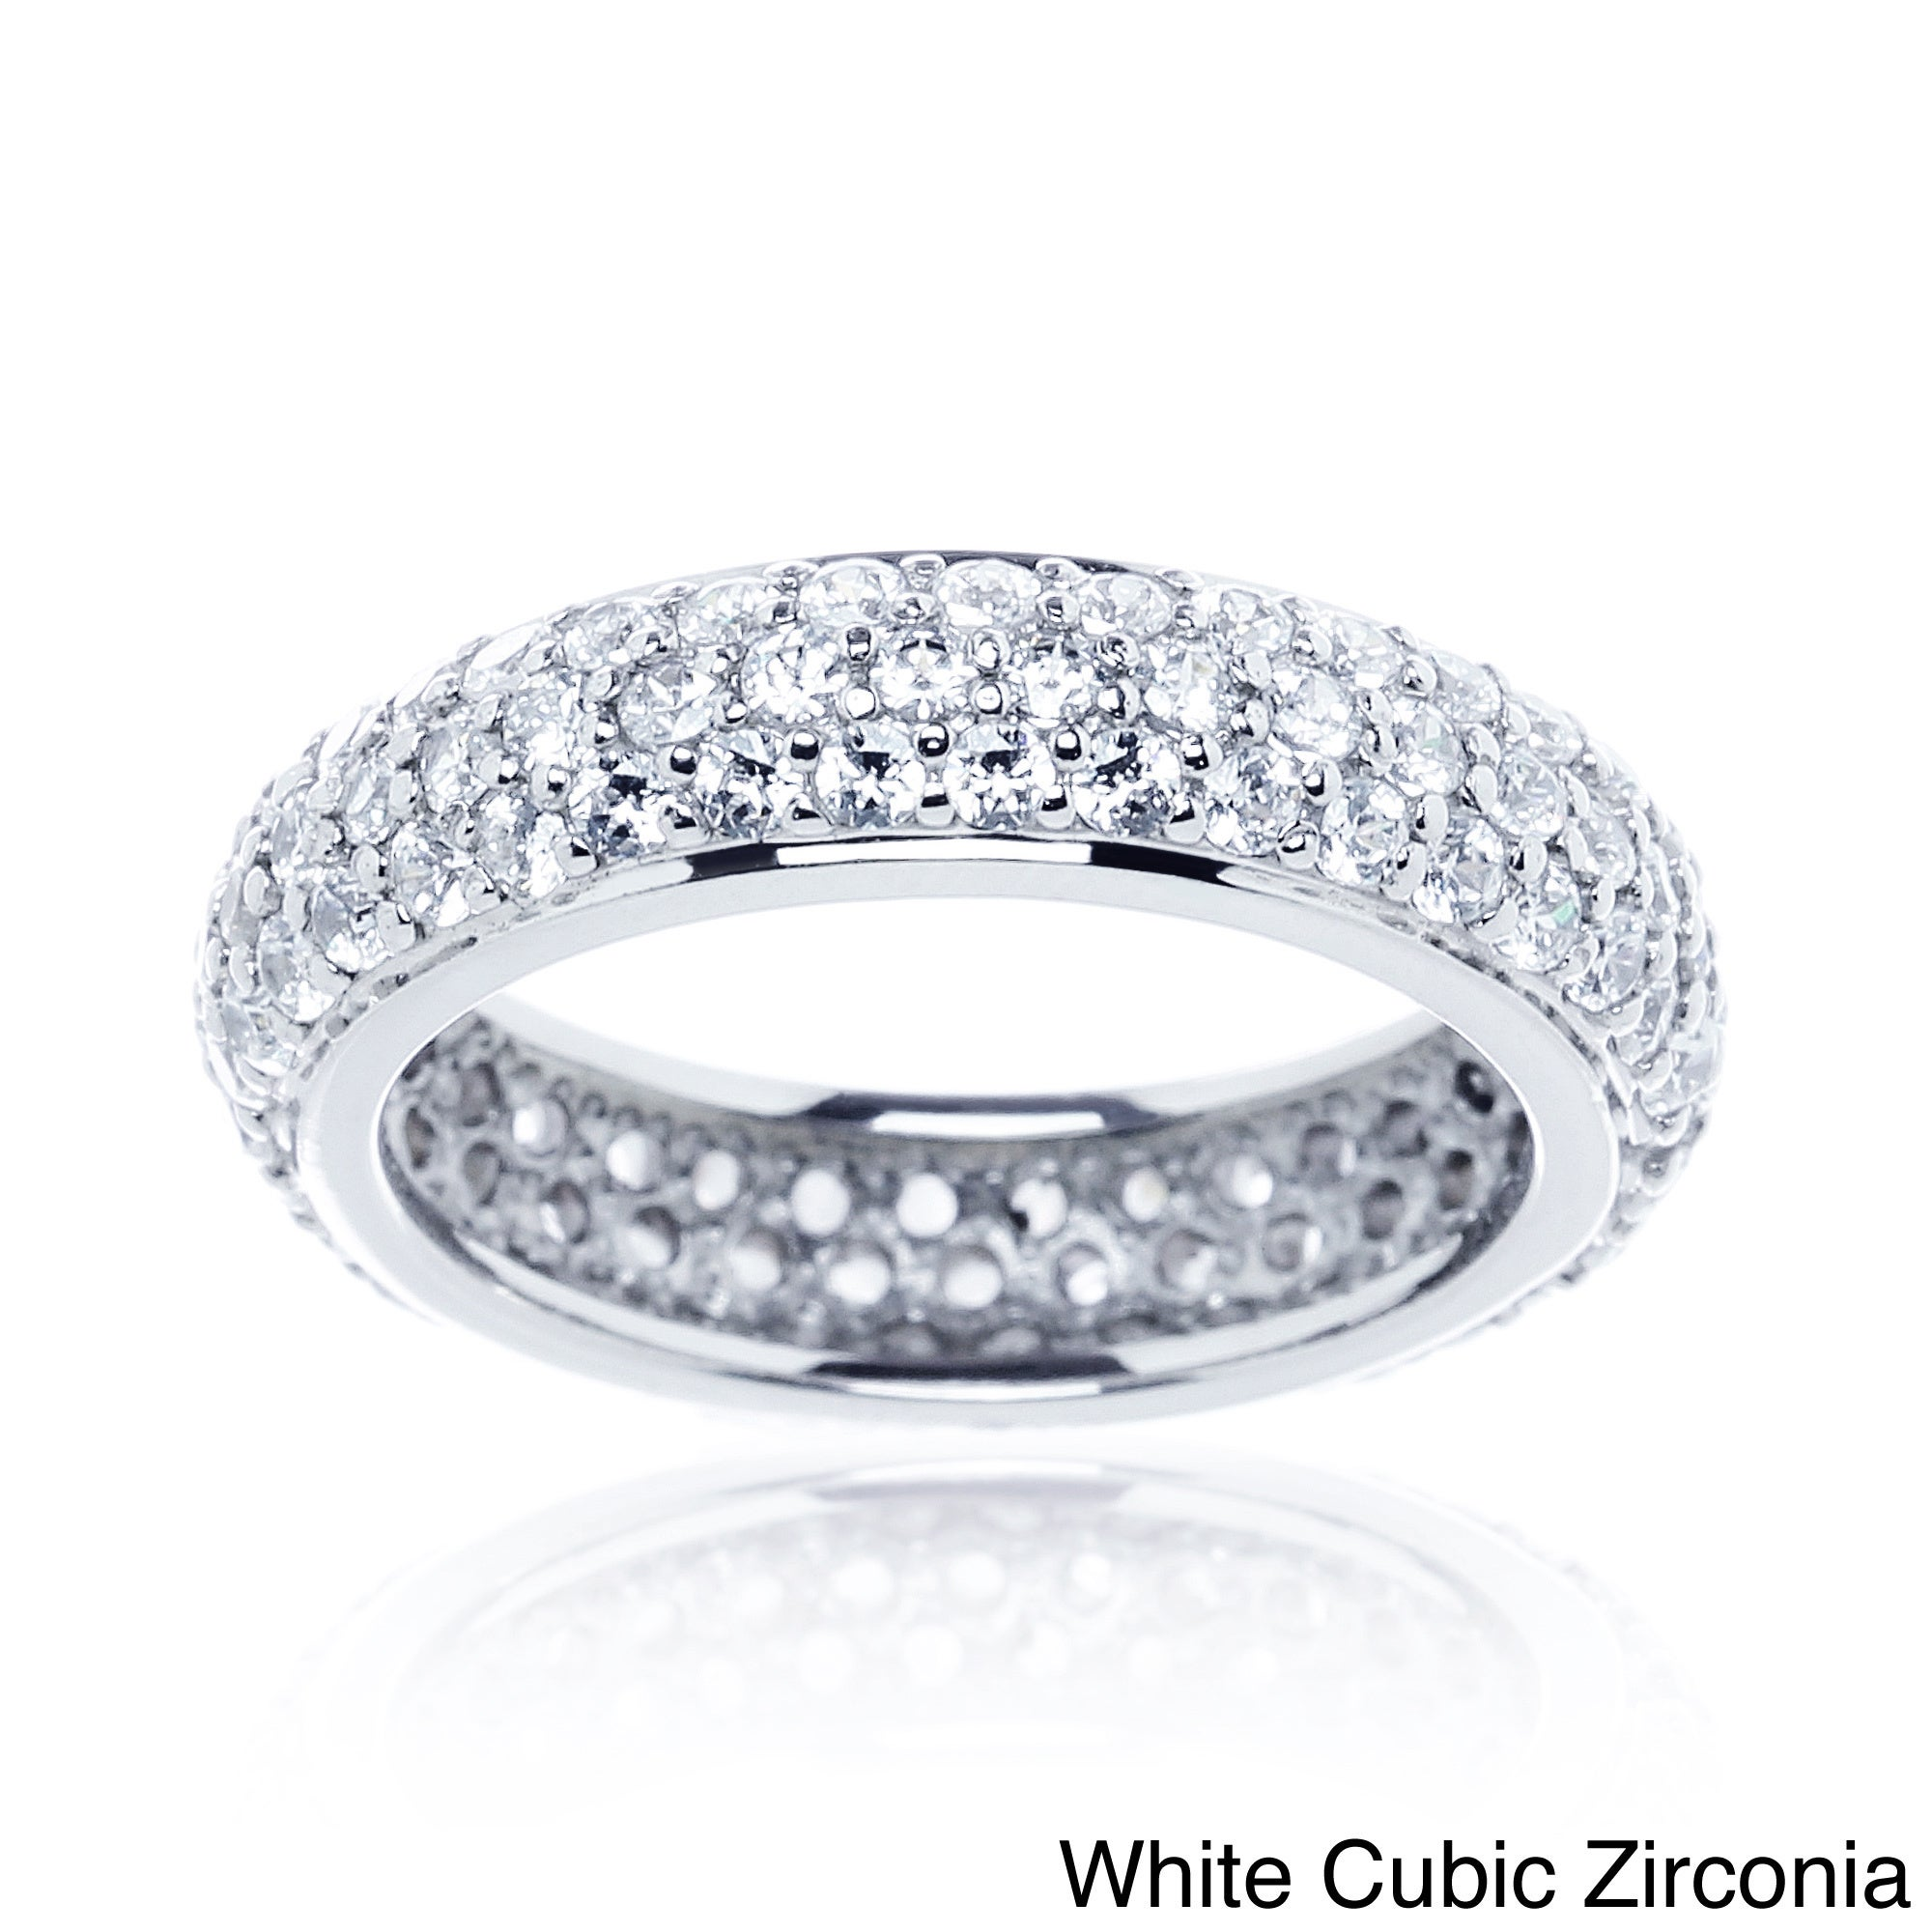 bands palmbeach zirconia in products jewelry cfm platinum tcw cubic at silver band detail eternity baguette over sterling